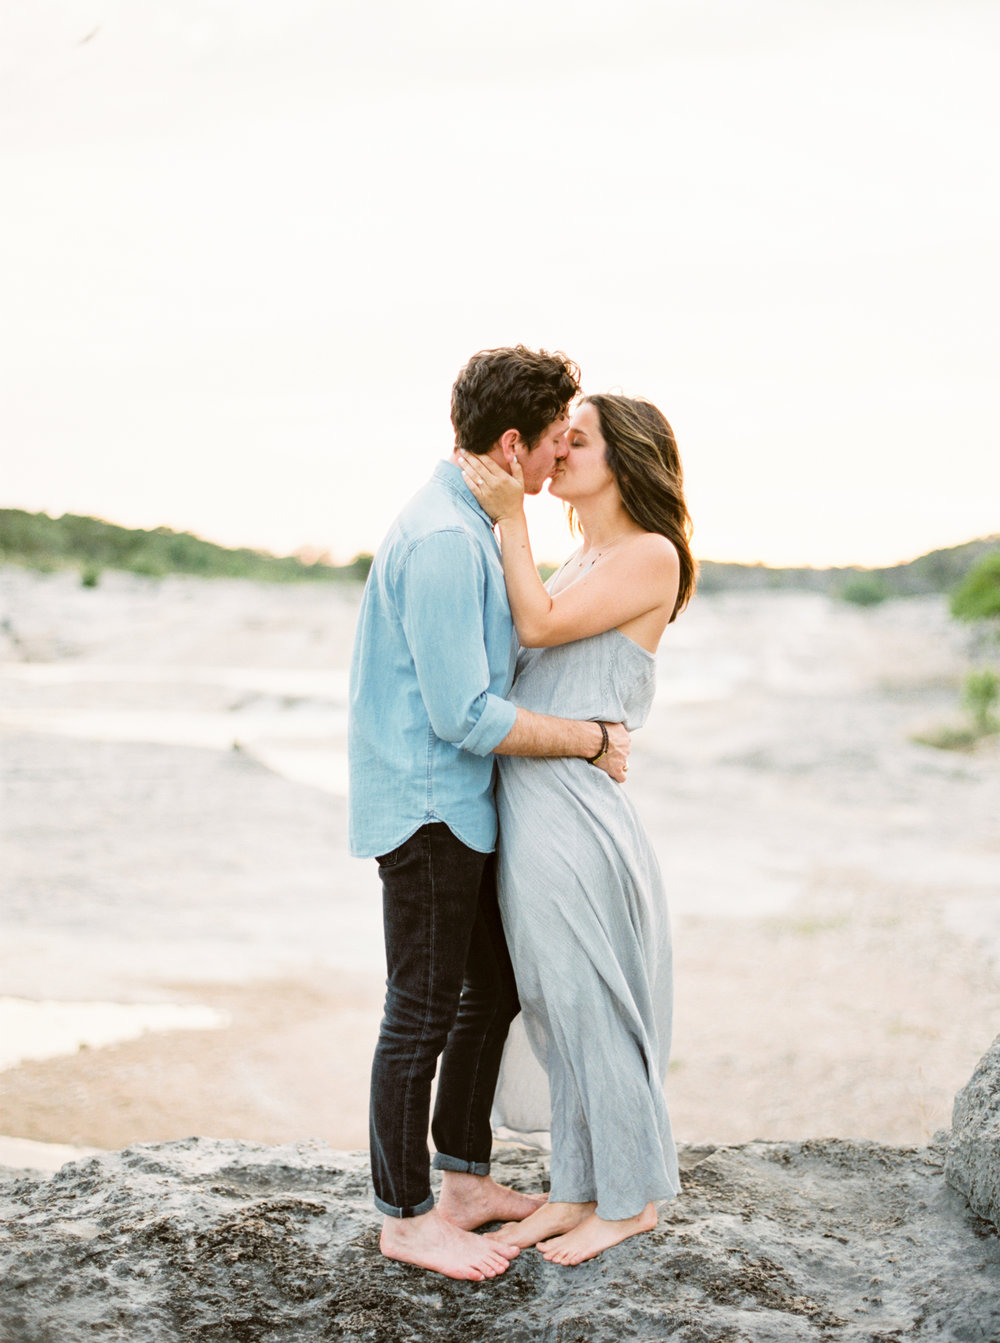 Engagement Session Outfits-22.jpg